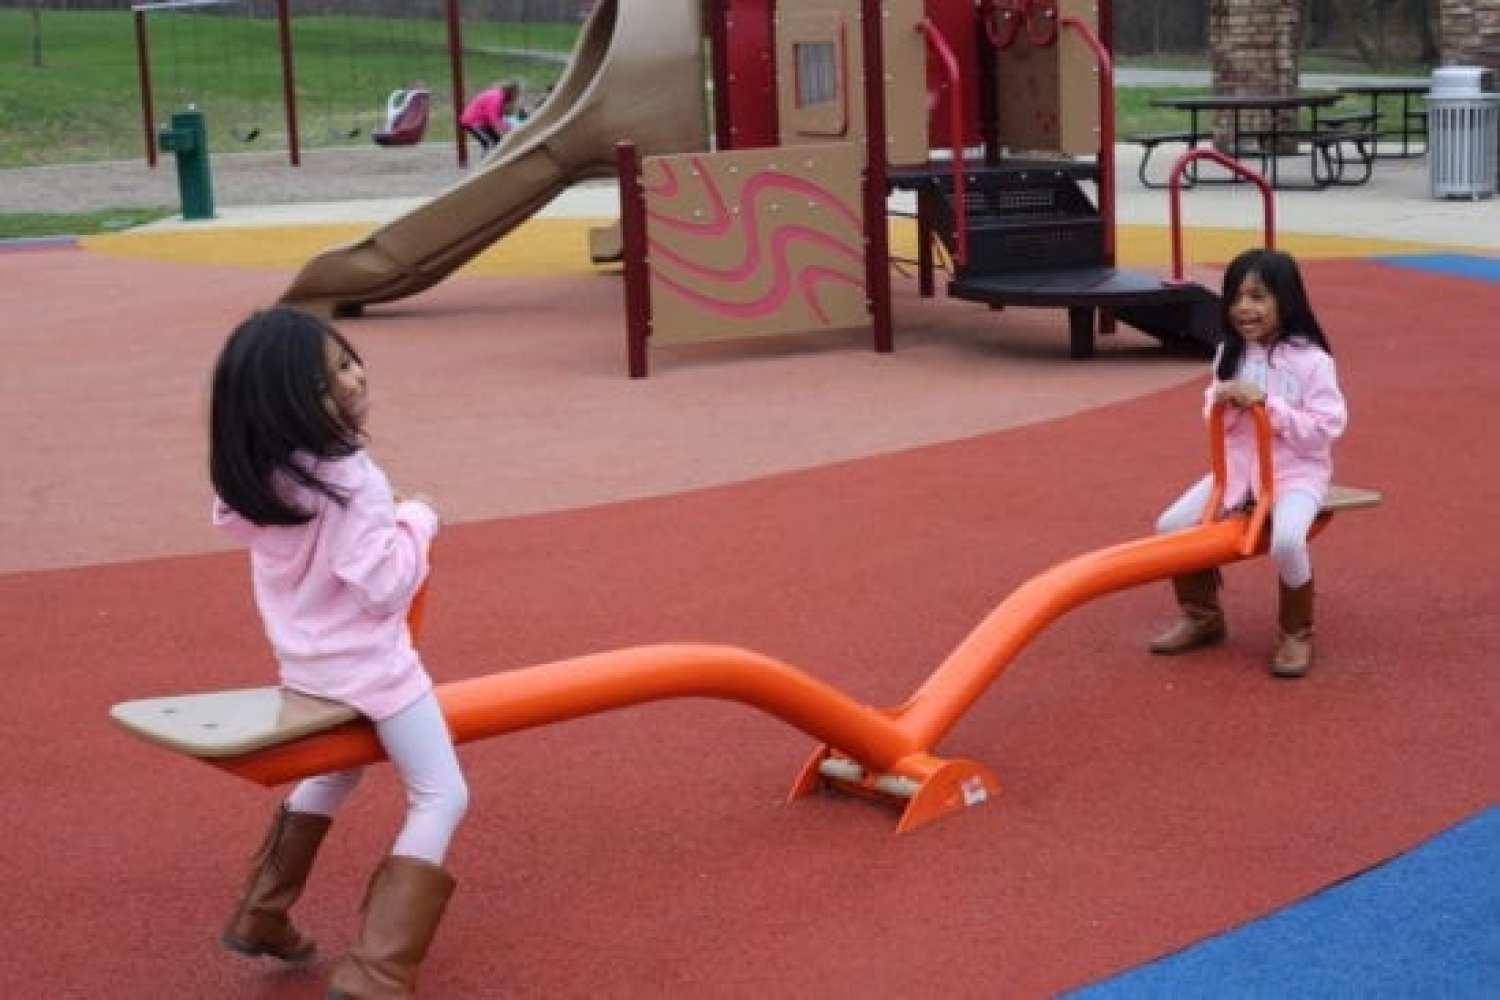 Teeter-totter at Lodge Playground